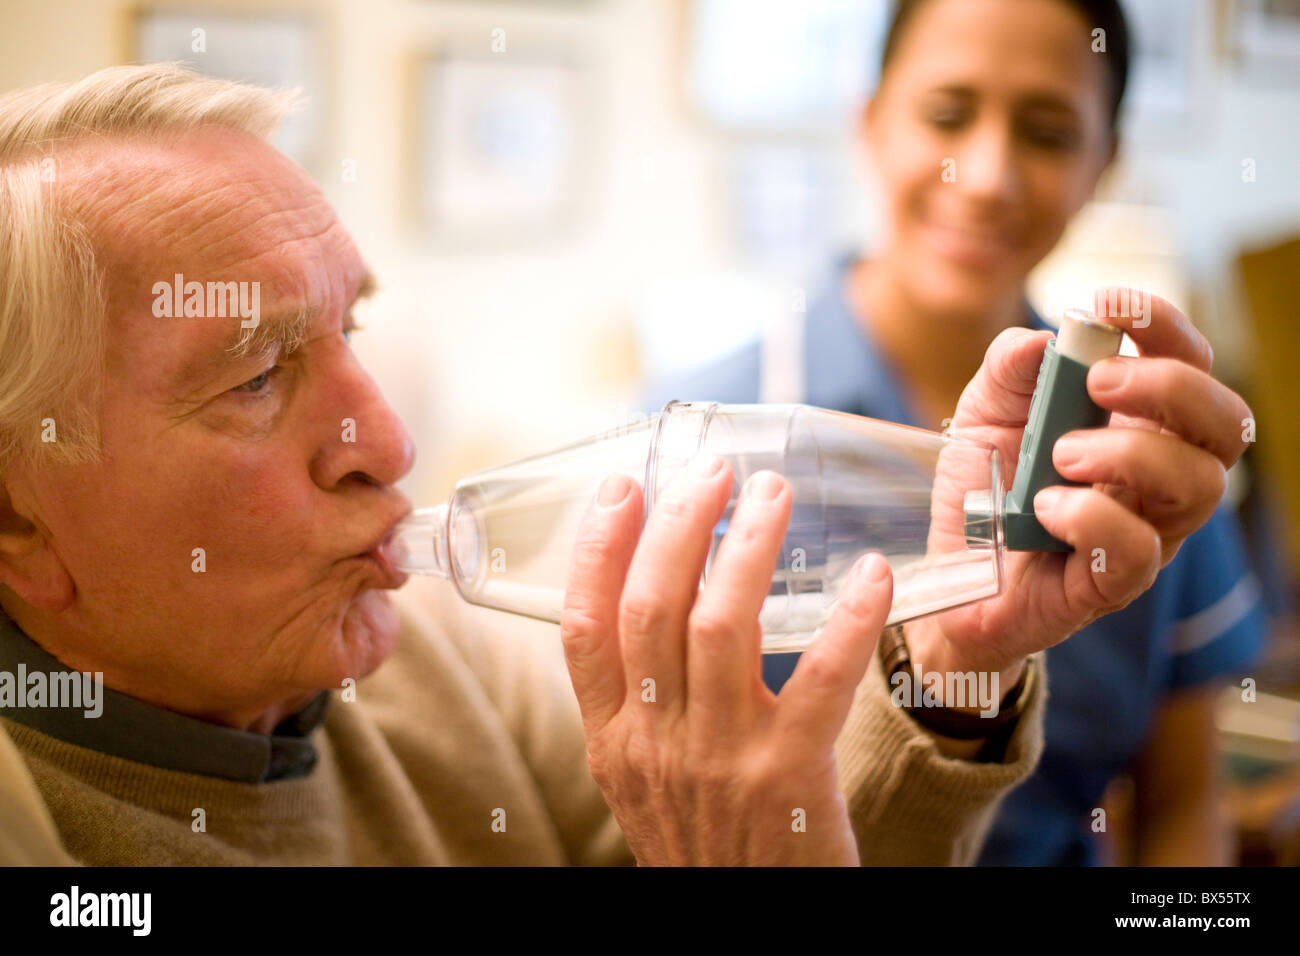 Asthma spacer use - Stock Image